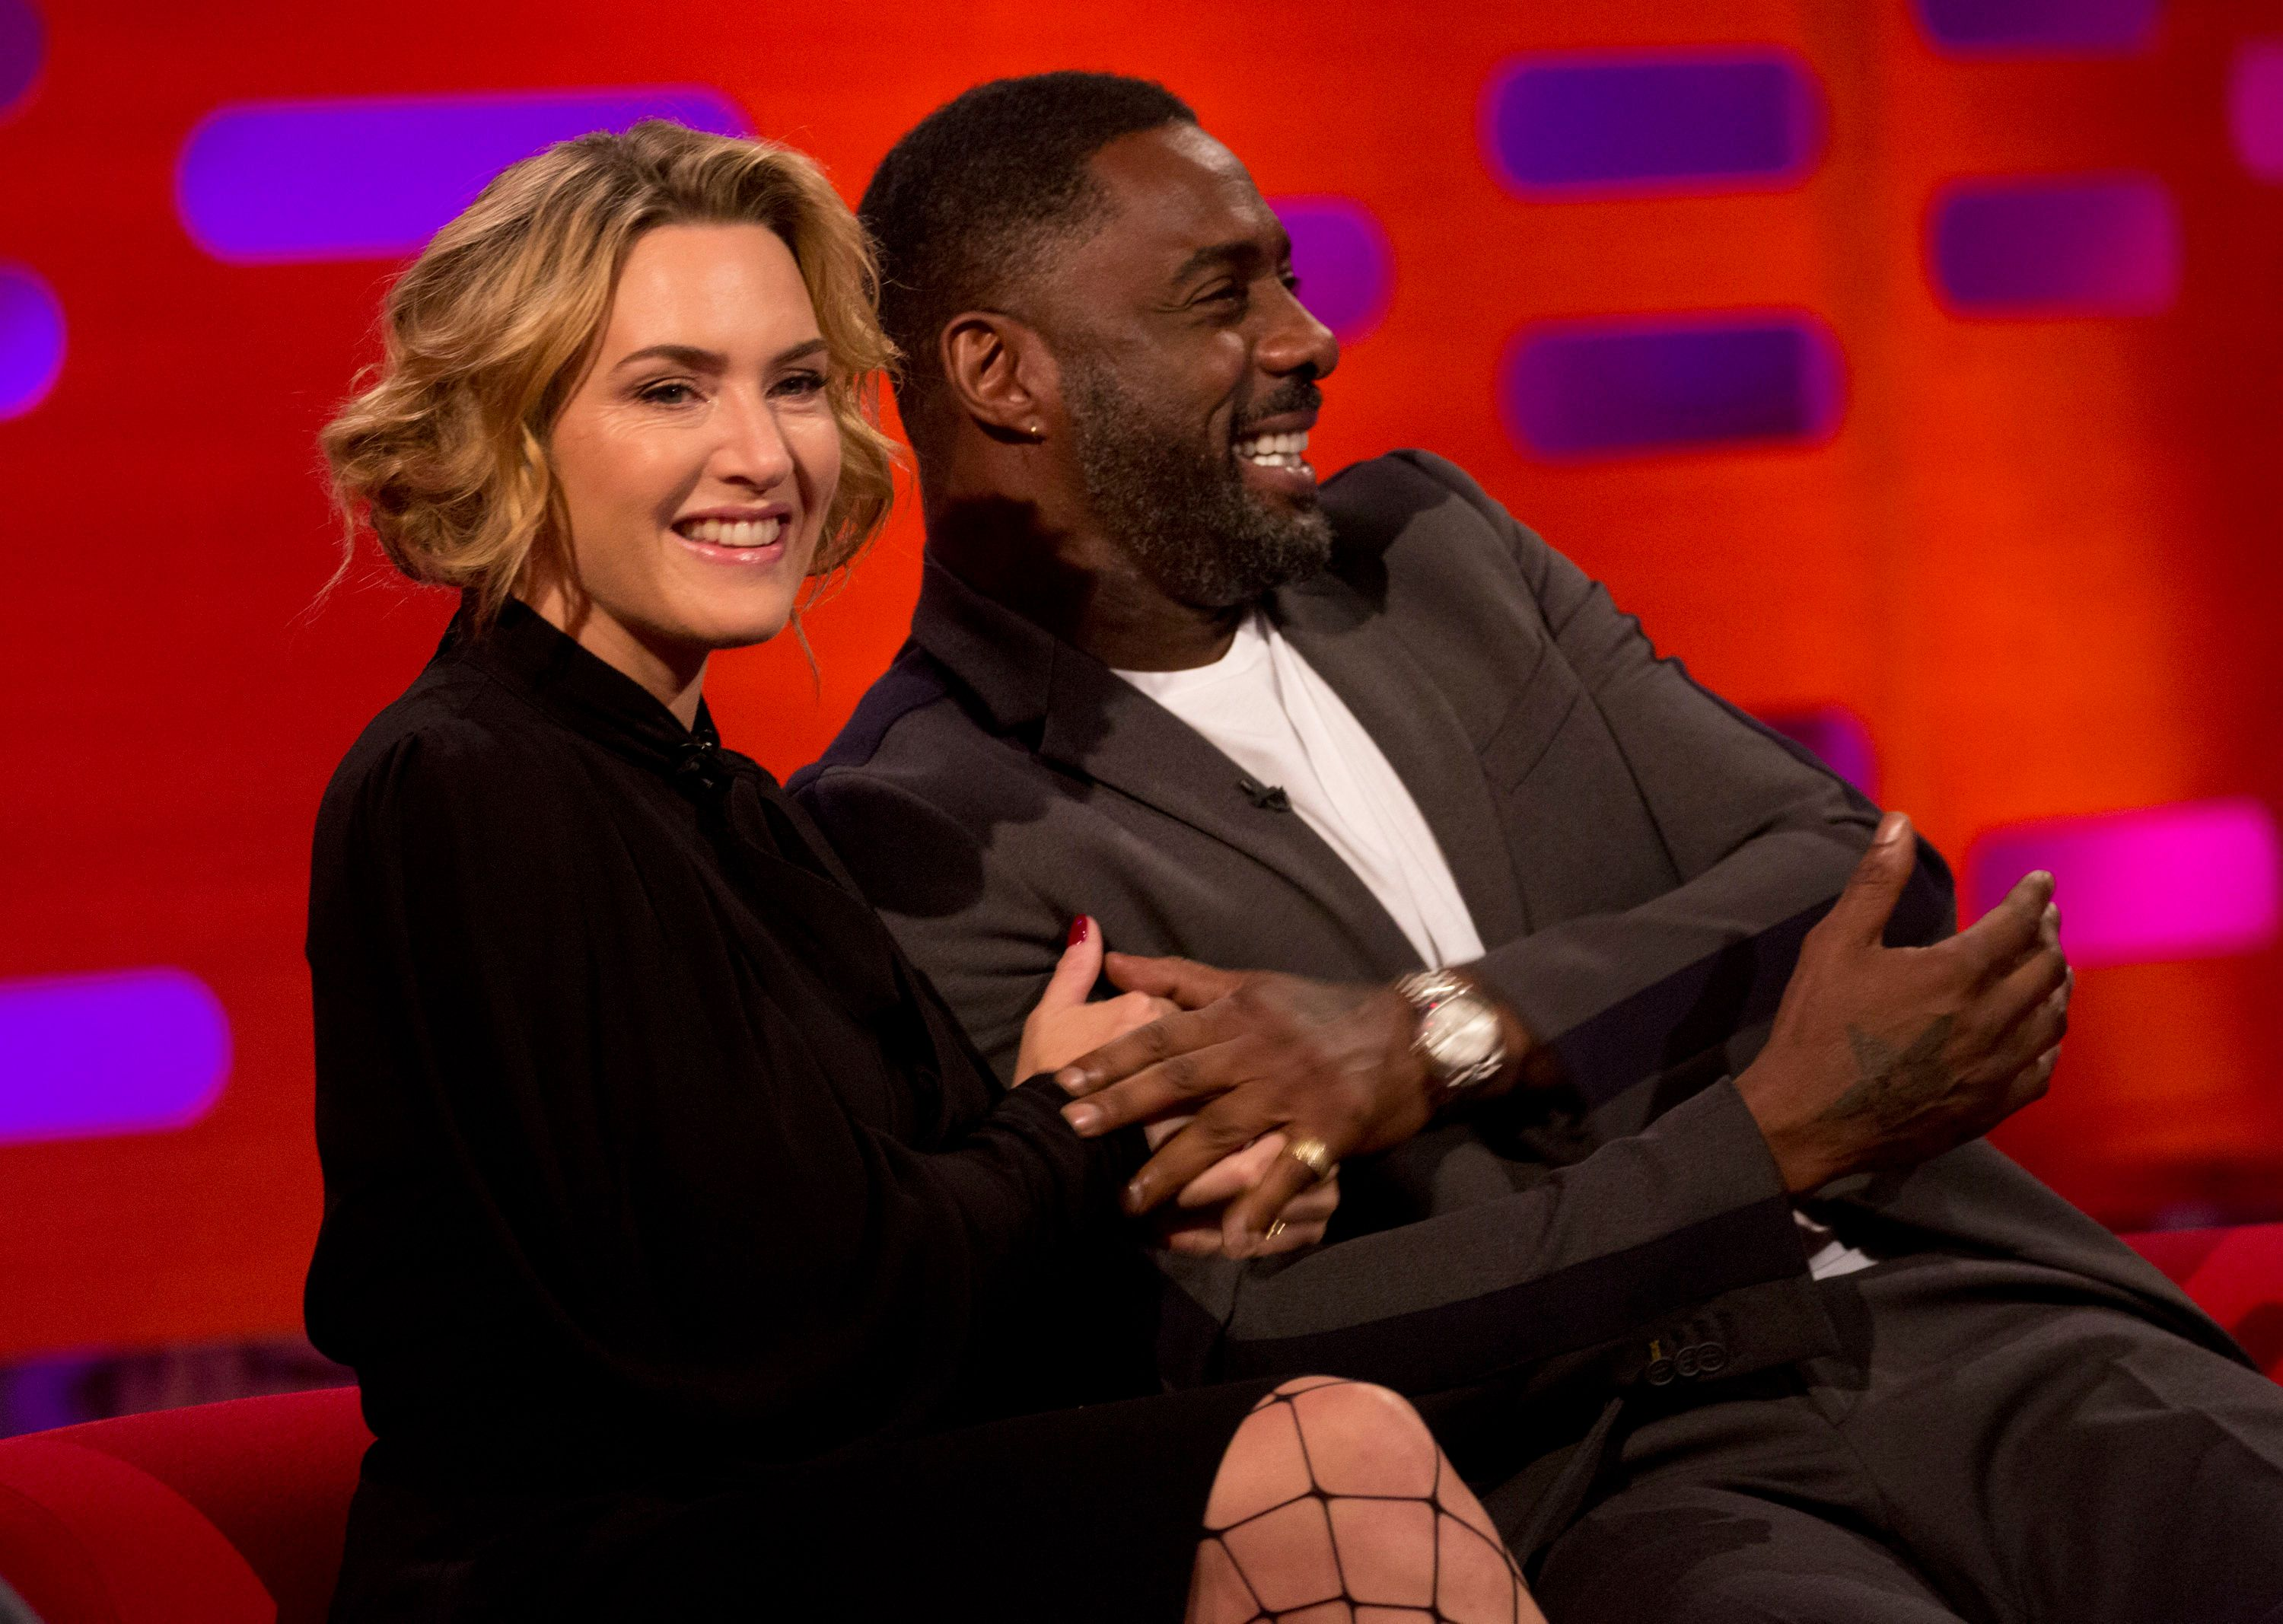 Kate Winslet and Idris Elba during filming of the Graham Norton Show at the London Studios, to be aired on BBC One on Friday evening. (Photo by Isabel Infantes/PA Images via Getty Images)